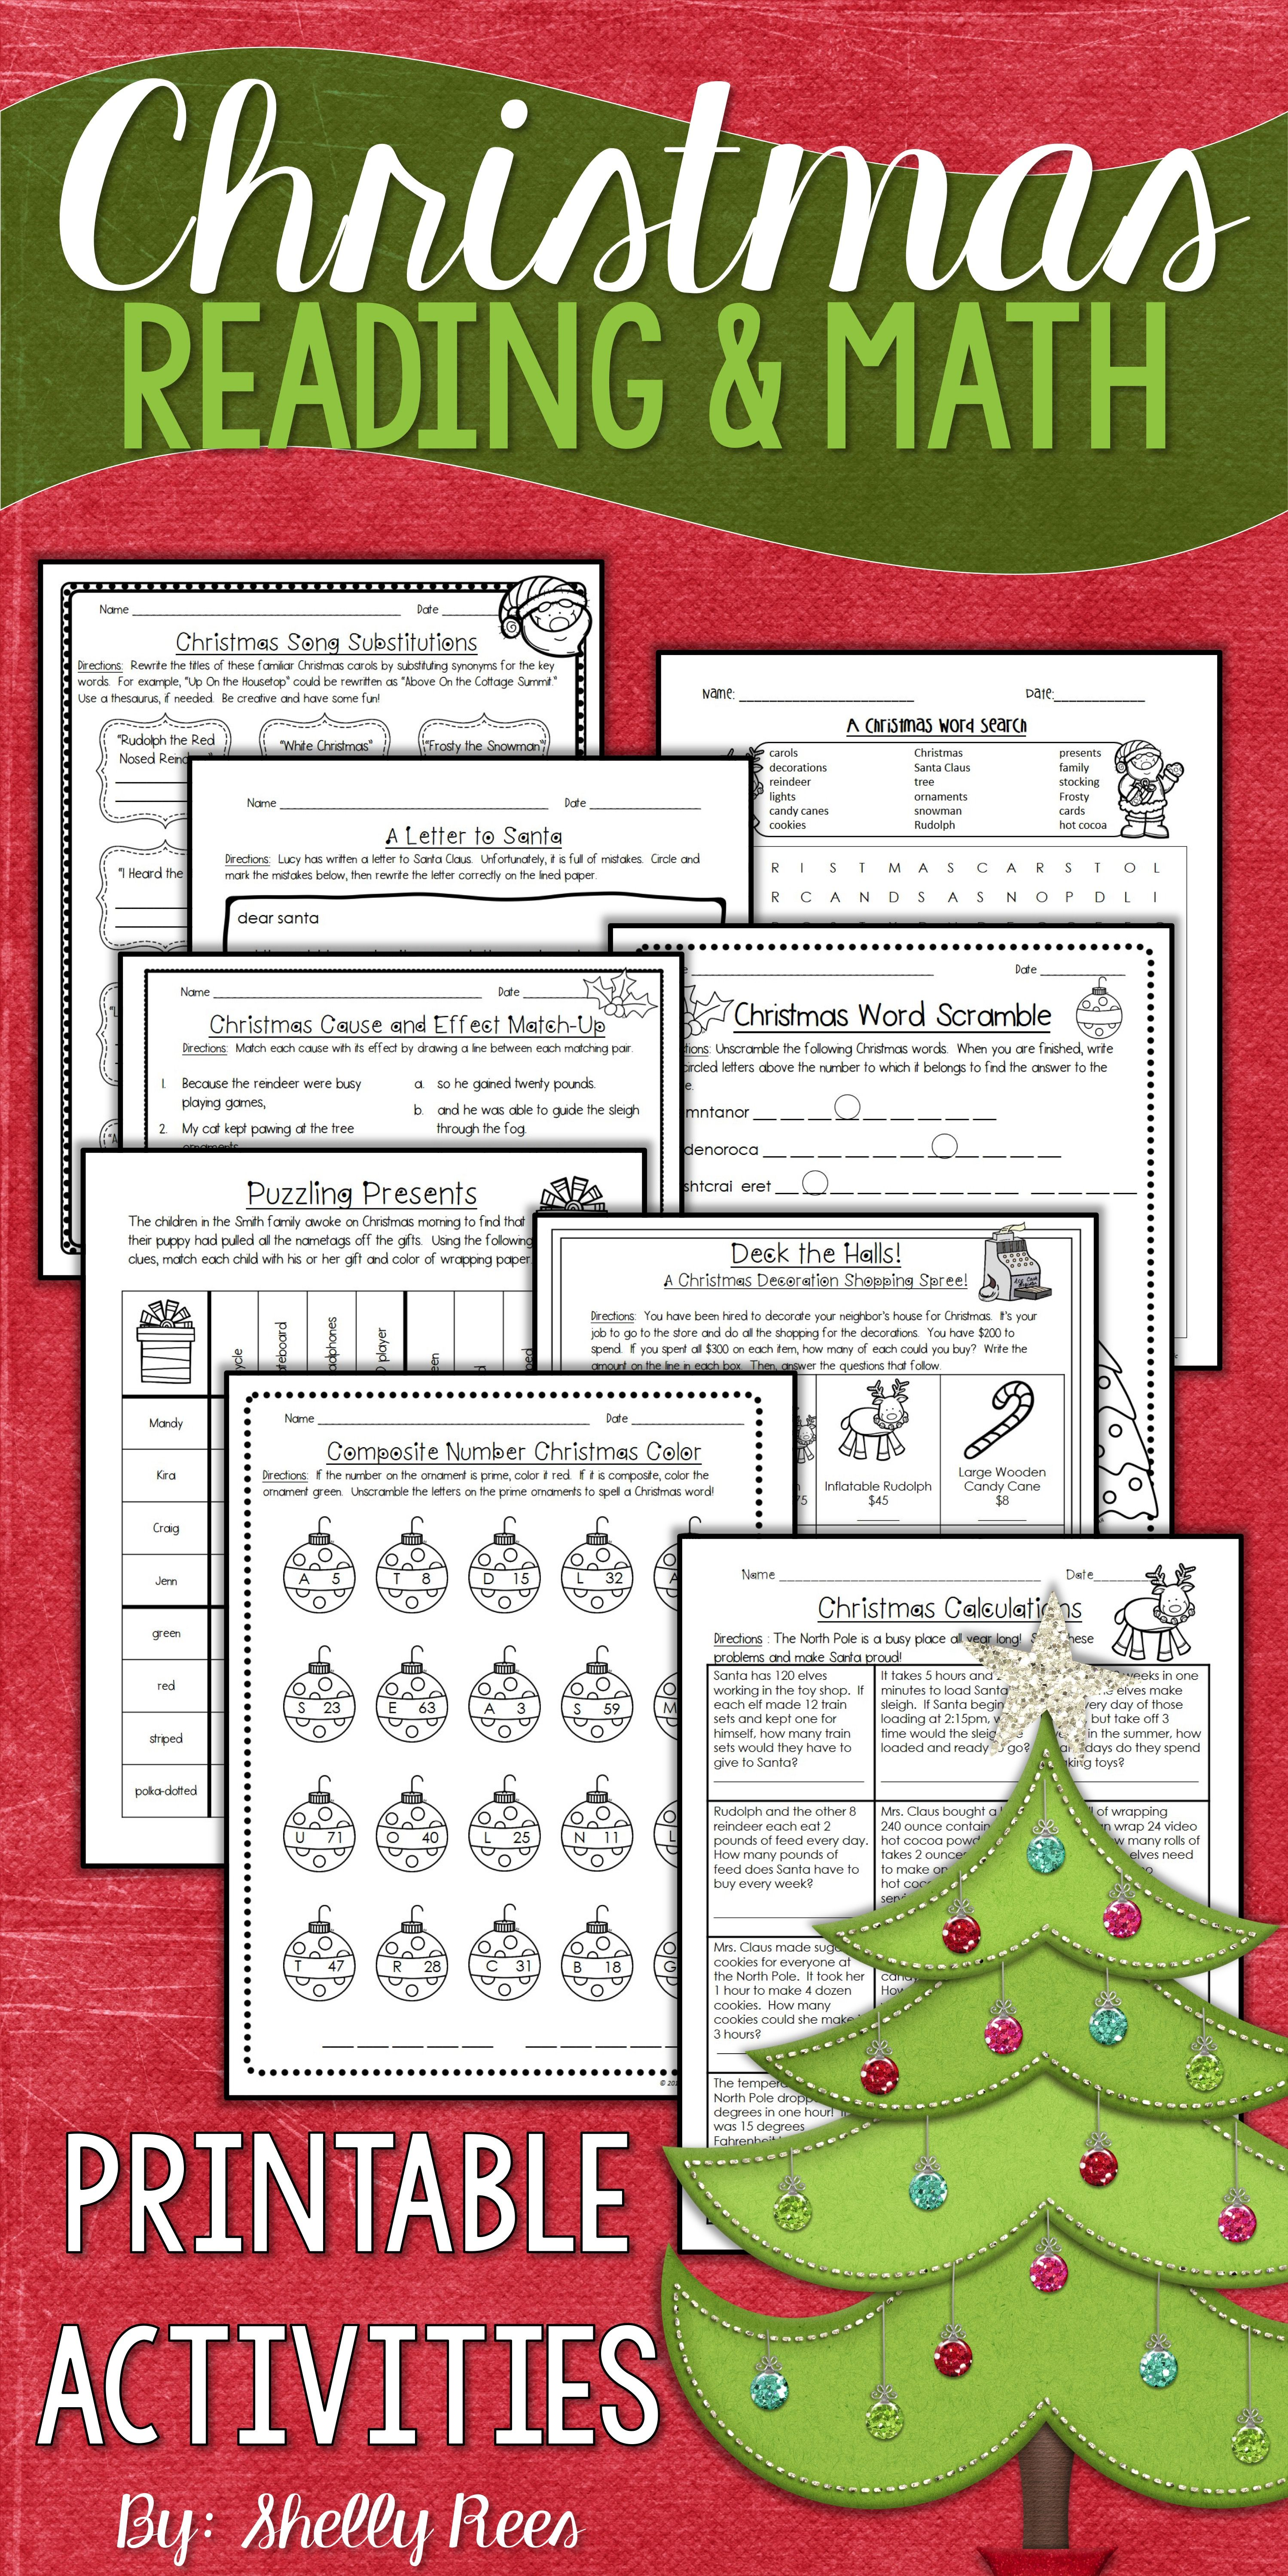 12 Best 4th Grade Reading Worksheets Printable Images On